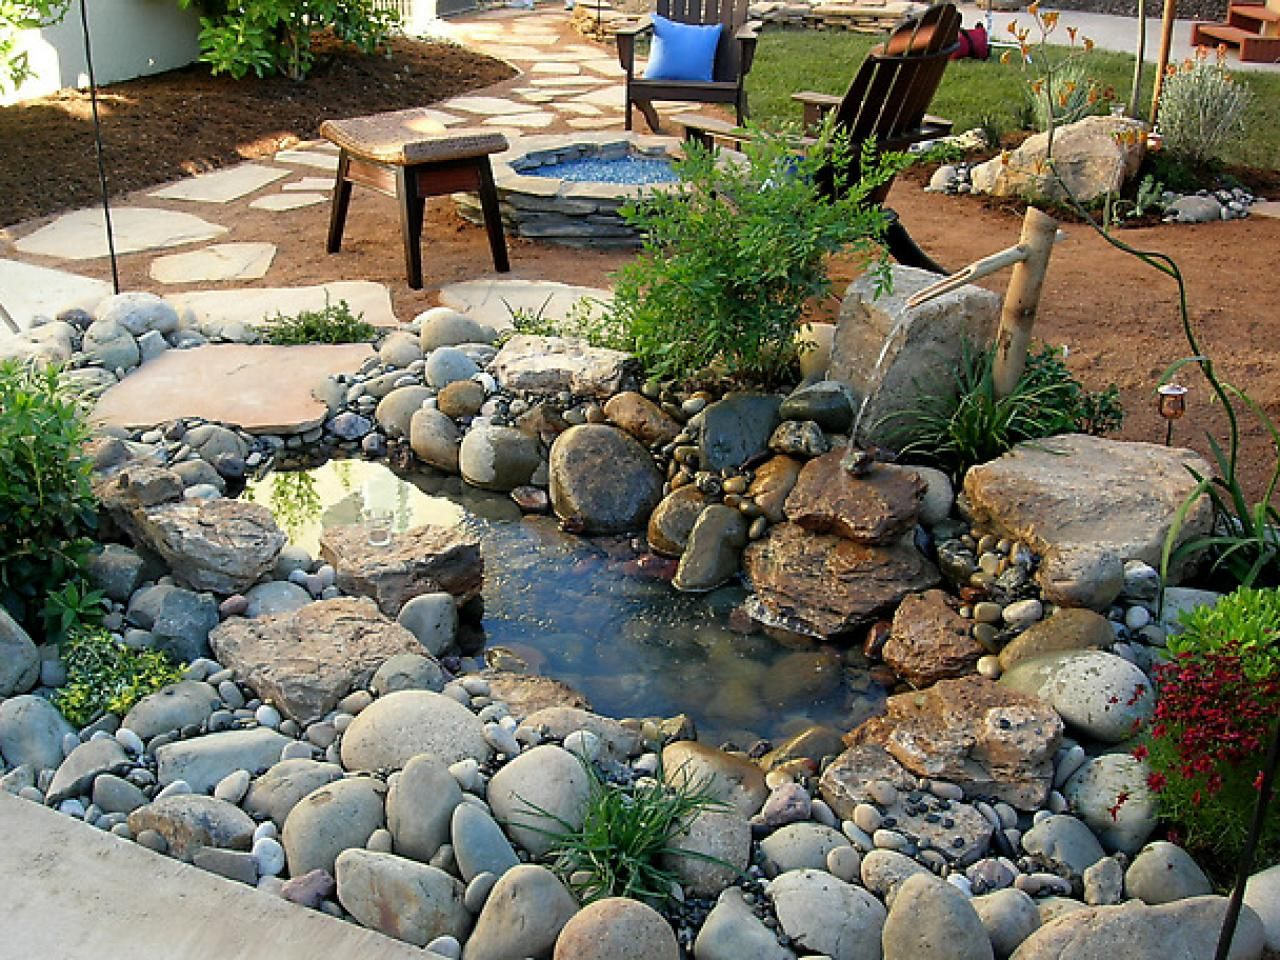 How to build a garden fountain - 1000 Images About Water Fountains On Pinterest Backyard Ponds Tree Trunks And Garden Ponds